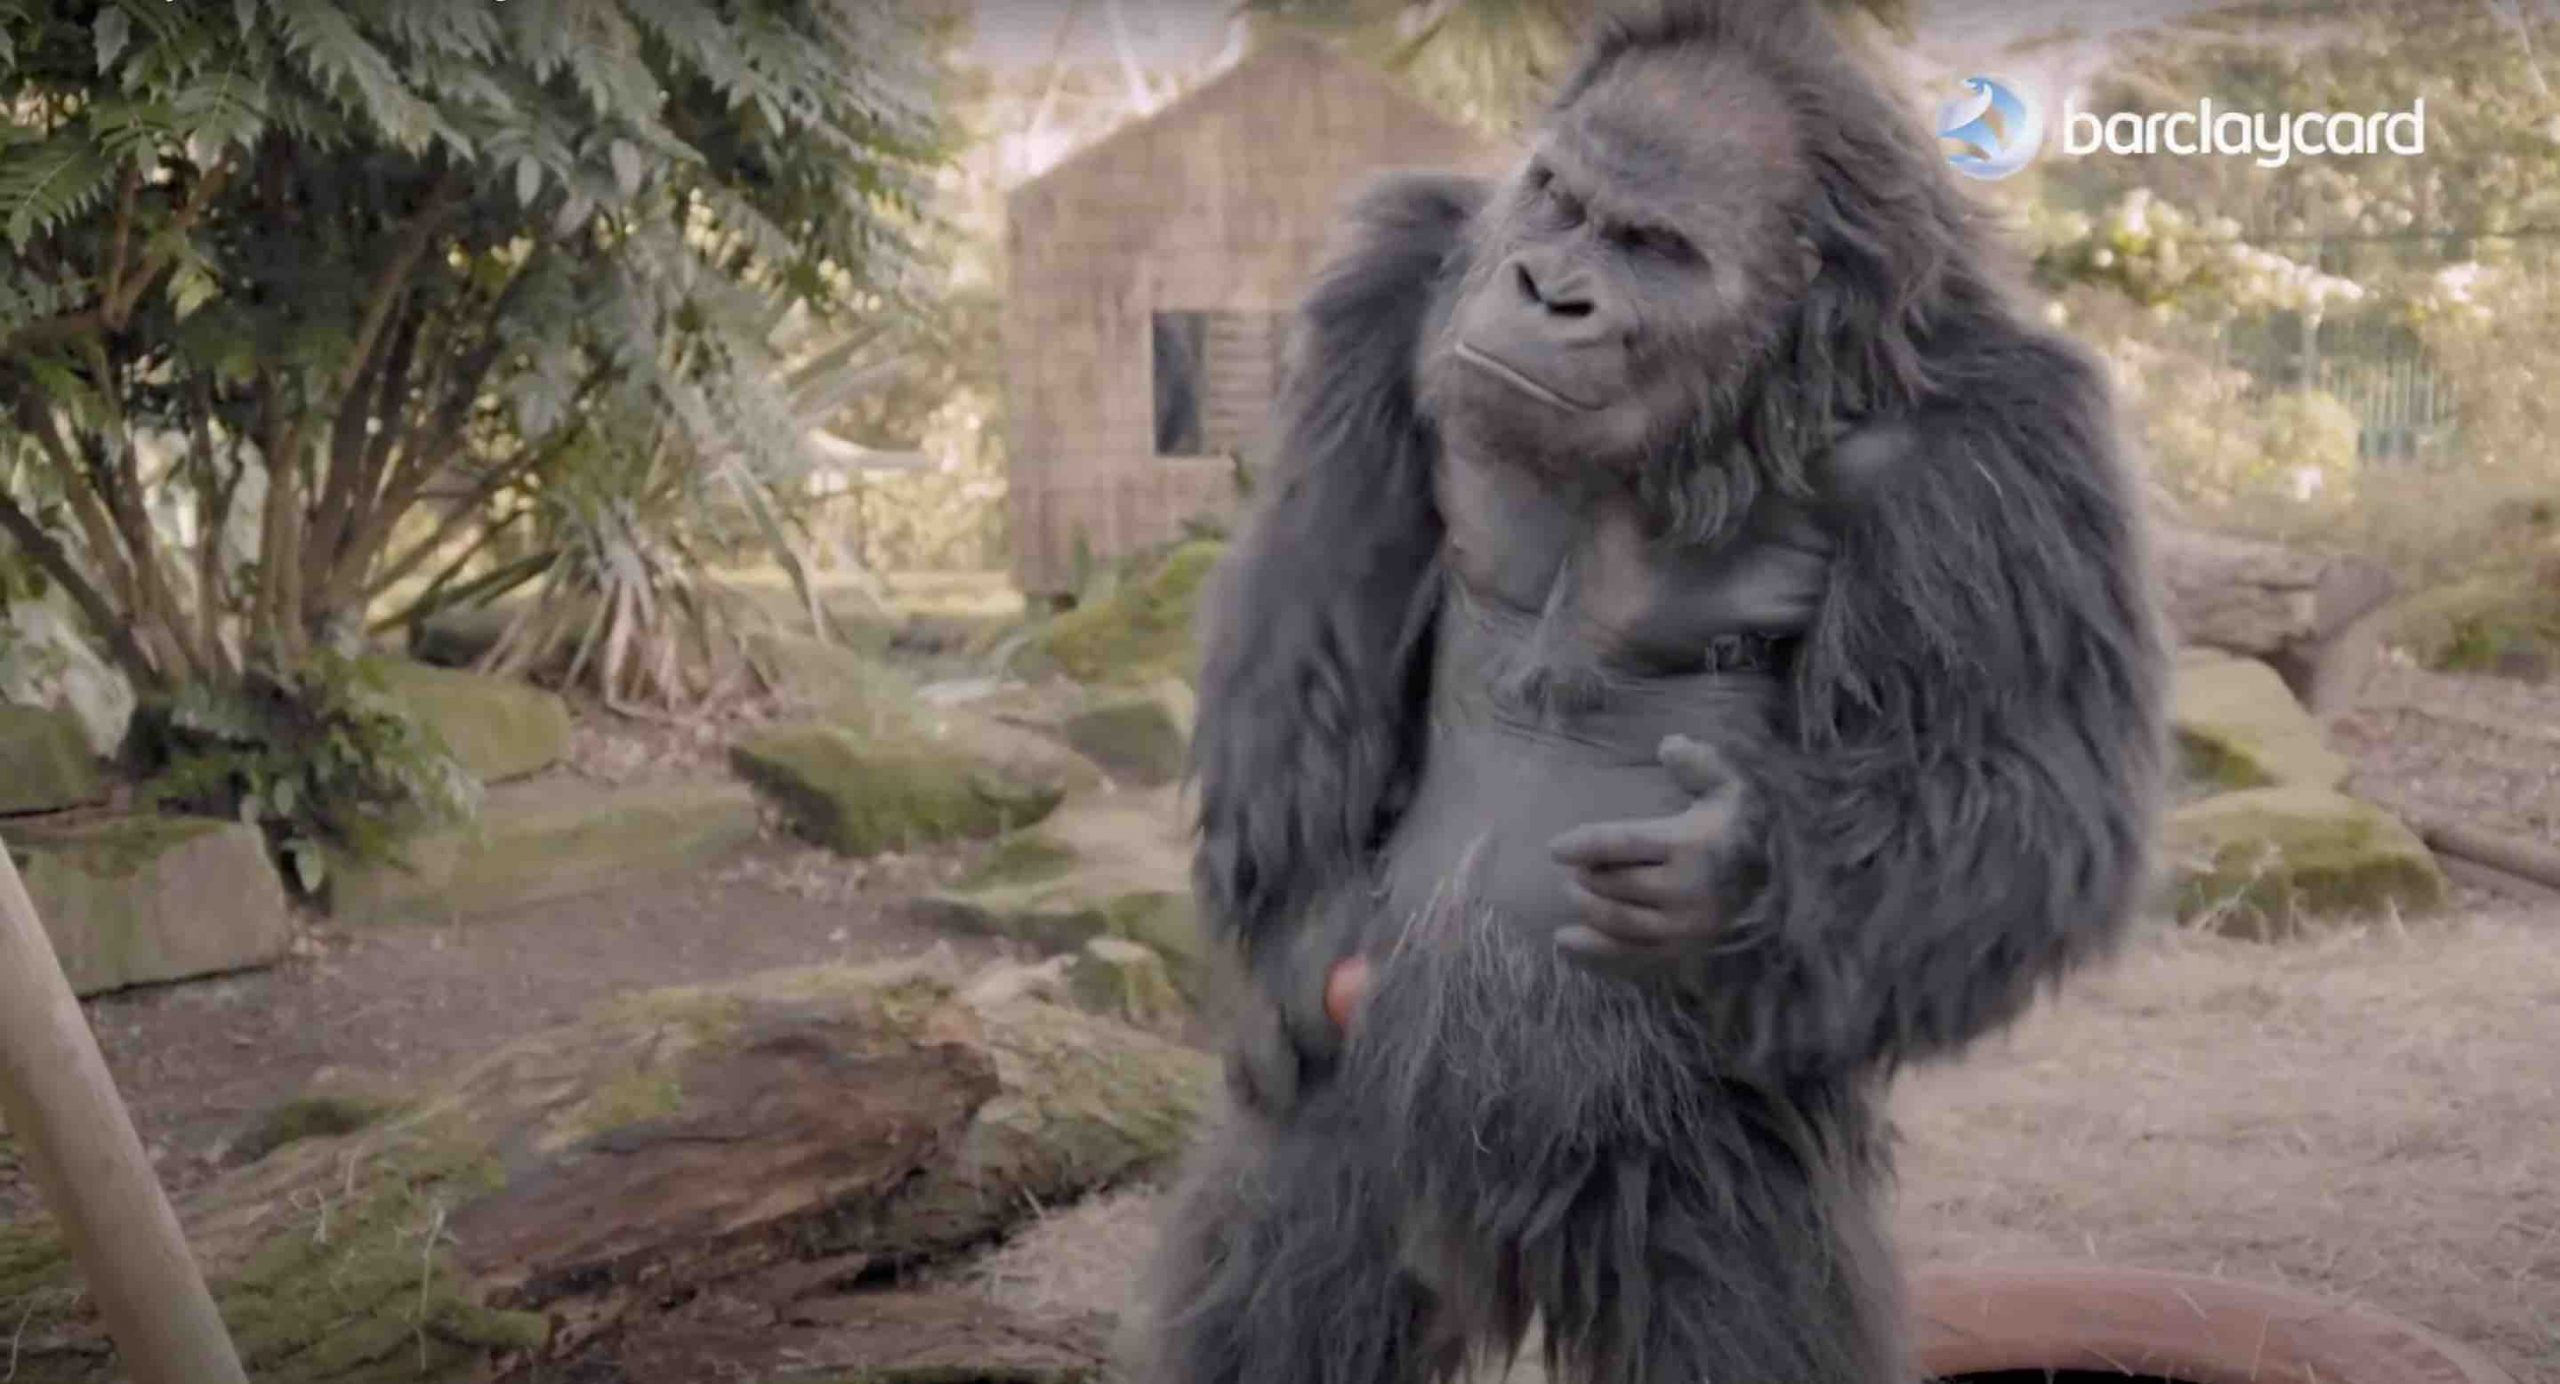 Barclaycard's new funny advert features gorillas playing pranks.